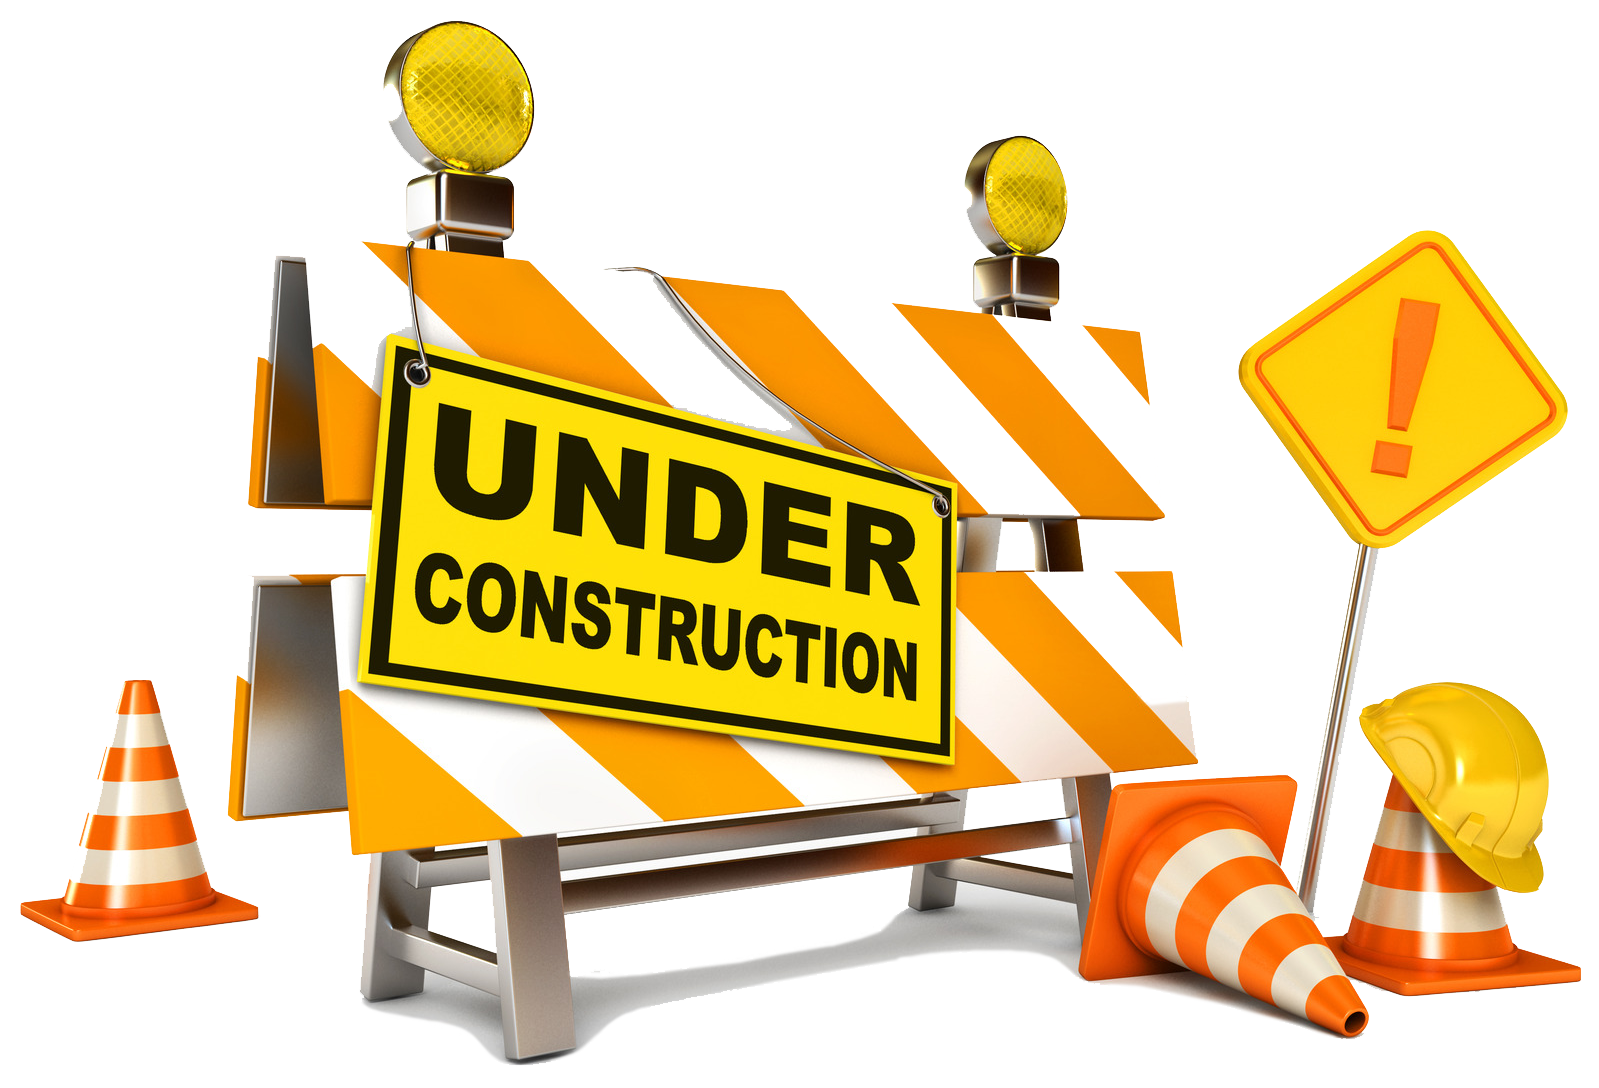 Under Construction Image, Under Construction PNG Images Free.